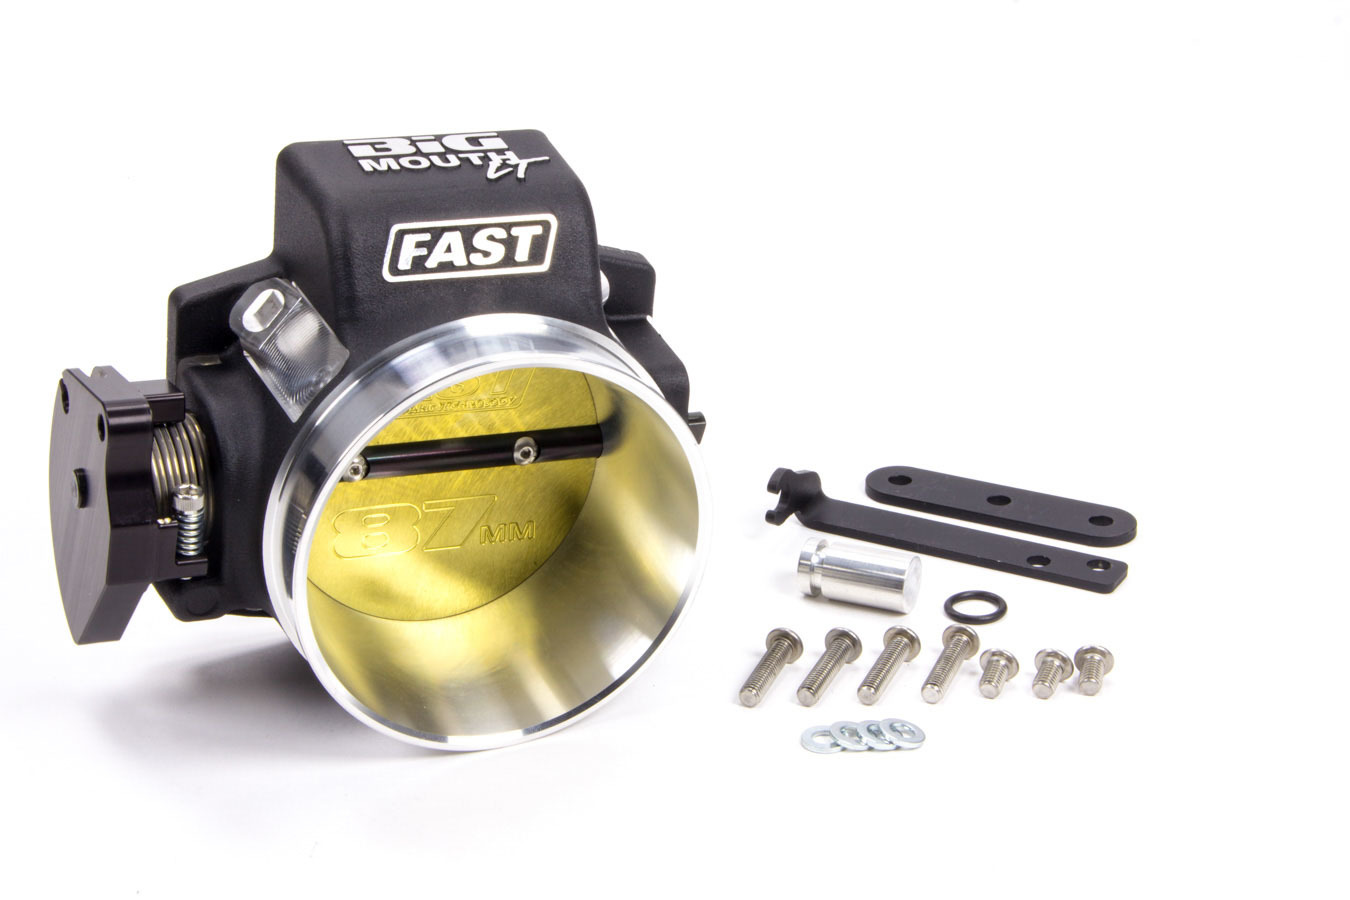 Fast Electronics 54086 Throttle Body, Big Mouth LT, Stock Flange, 87 mm Single Blade, Aluminum, Black Powder Coat, Ford Coyote, Each